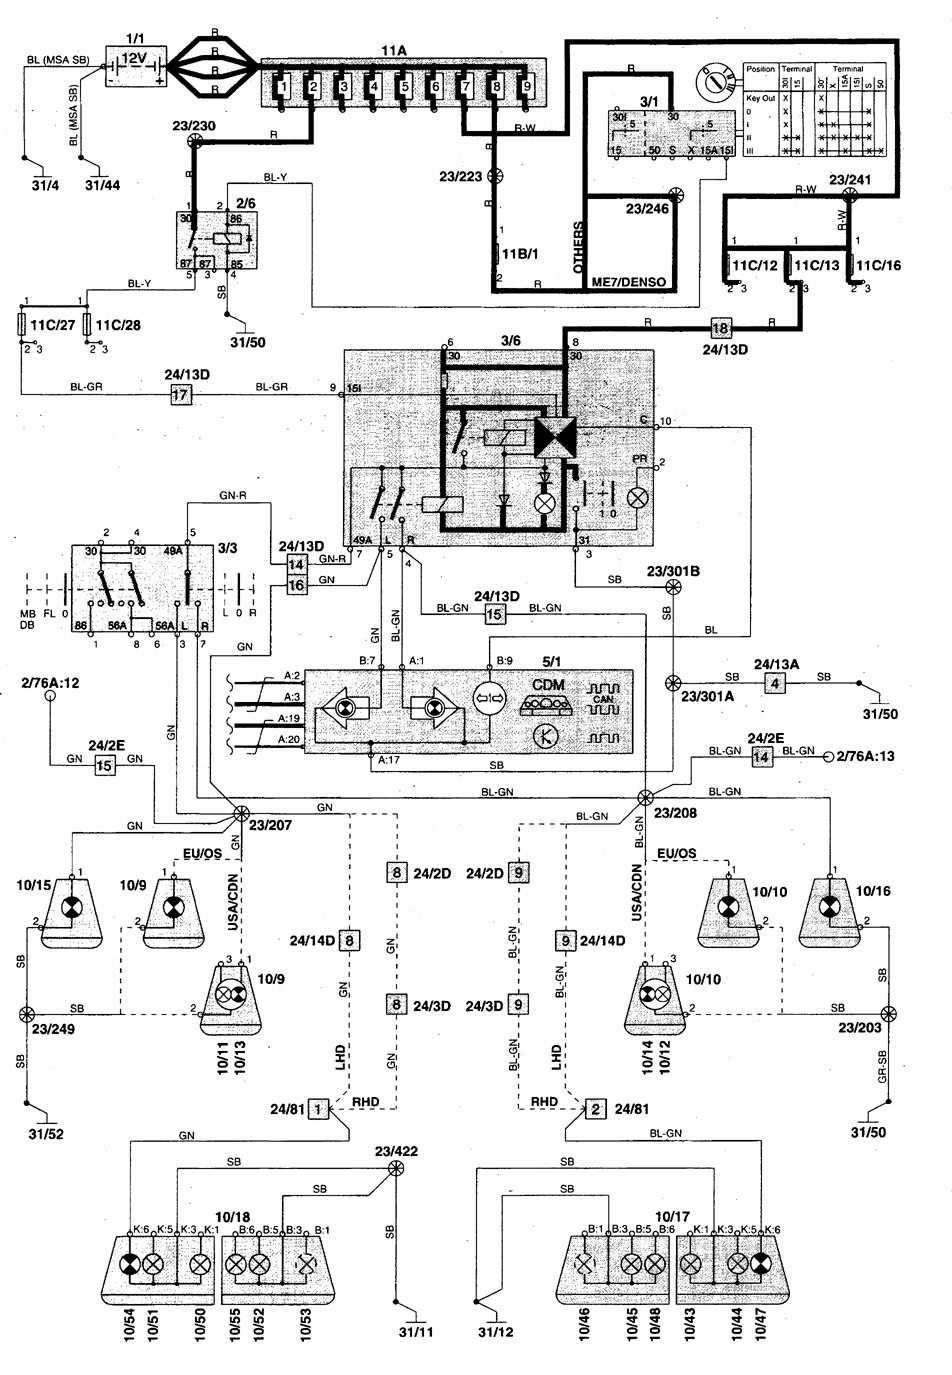 volvo s70 wiring diagram turn signal lamp 1999 volvo s70 (1998 2000) wiring diagrams turn signal lamp 99 Volvo S70 Engine at mifinder.co